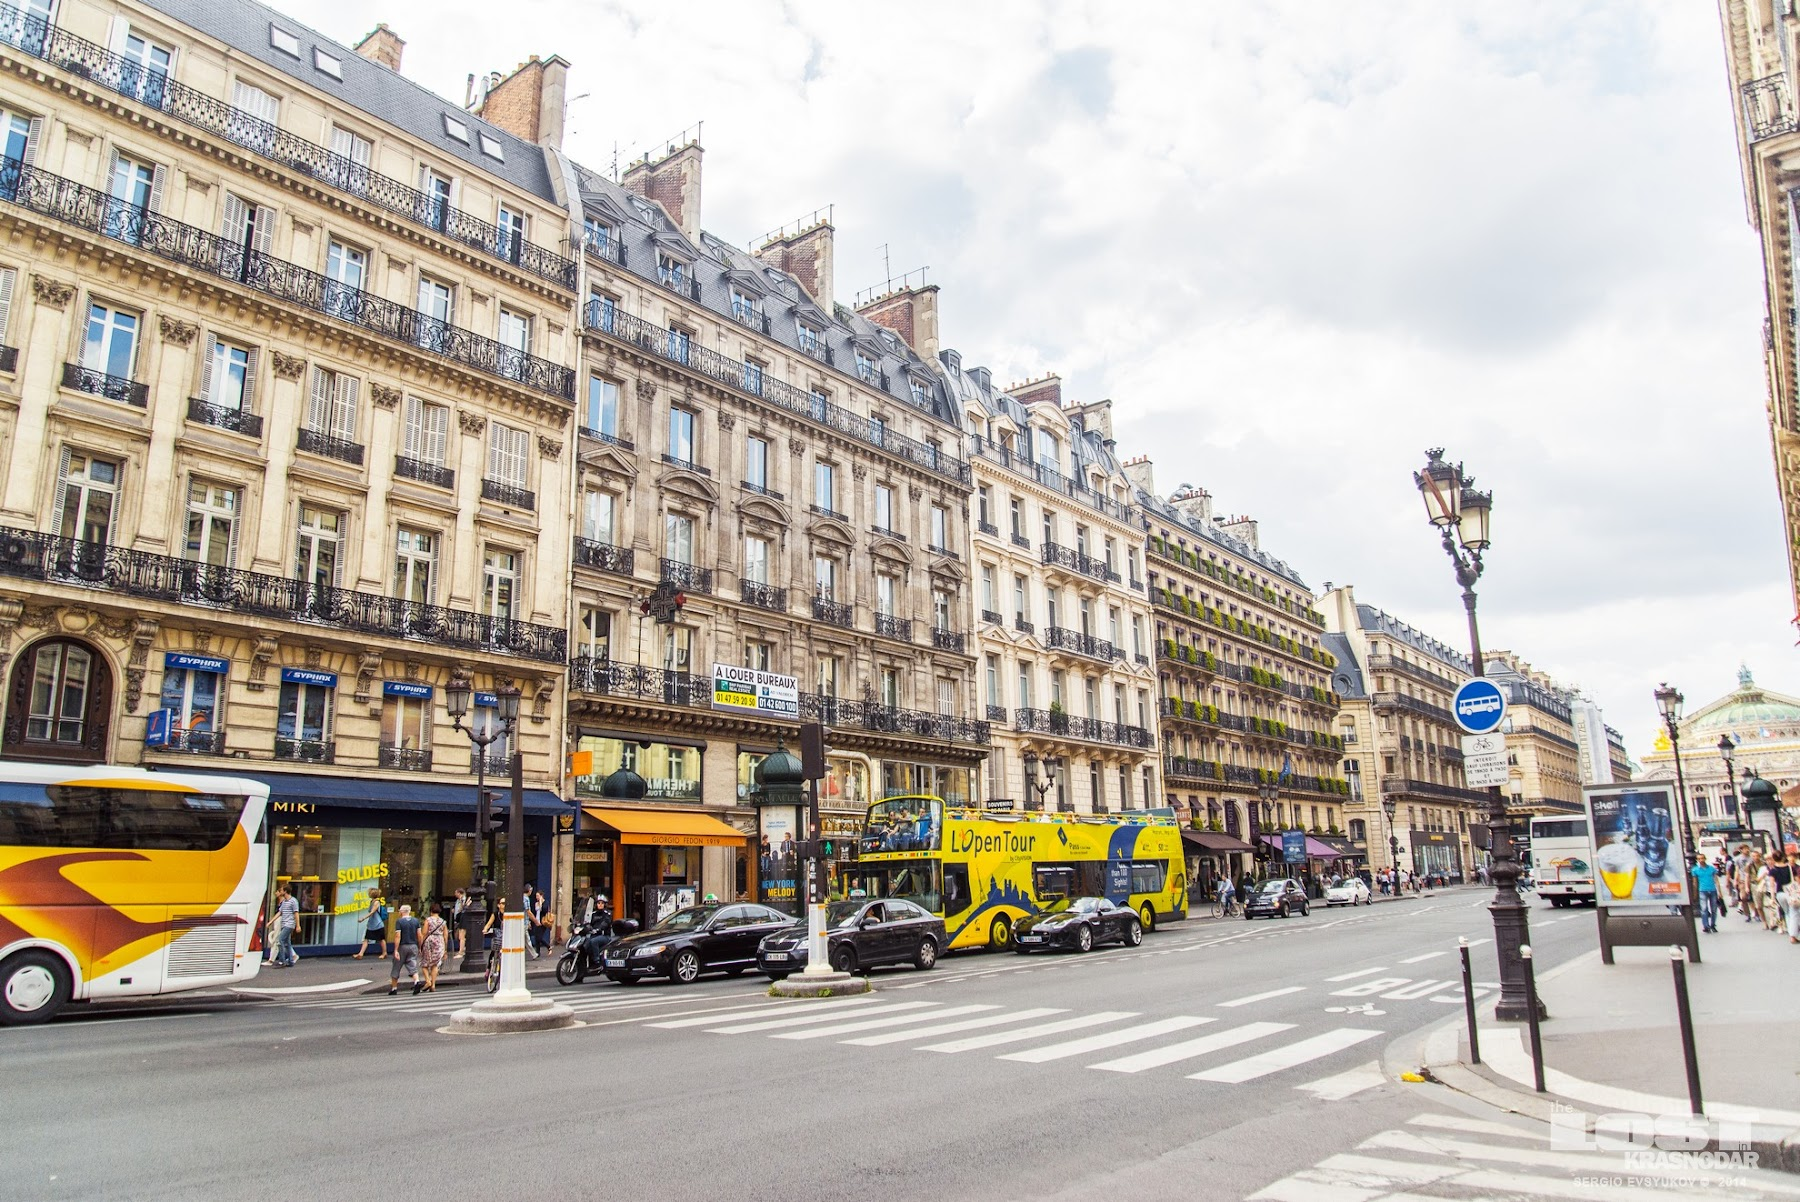 Avenue de l'Opéra in Paris